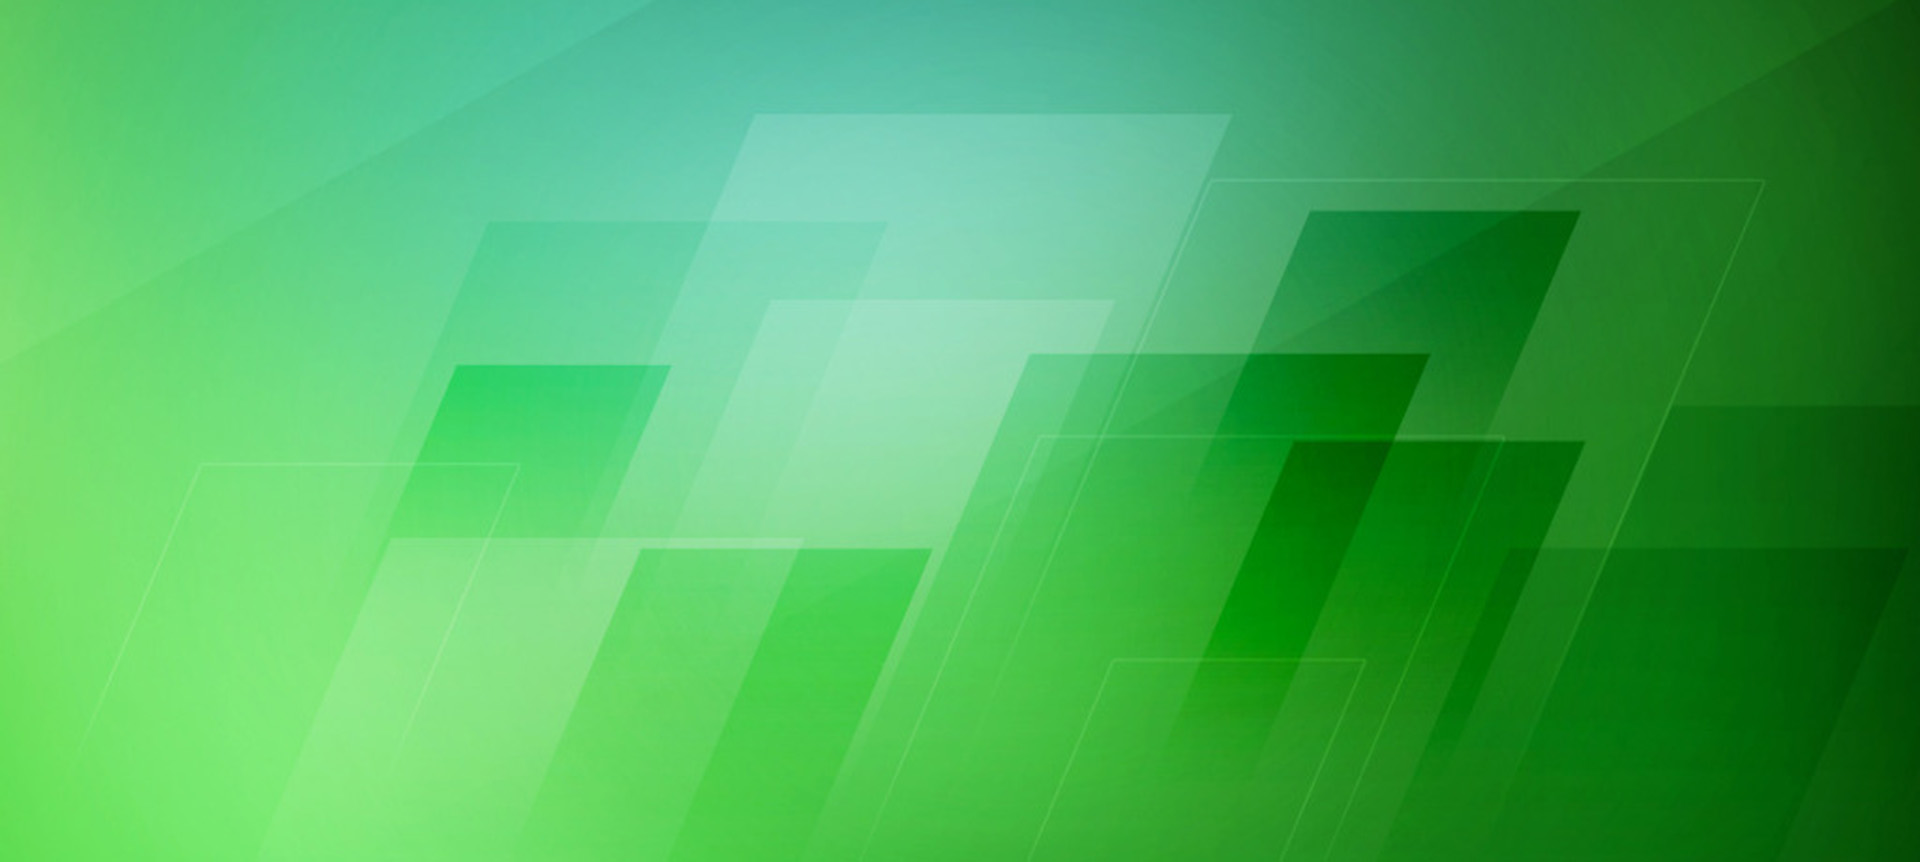 green flat  green  flat  poster background image for free